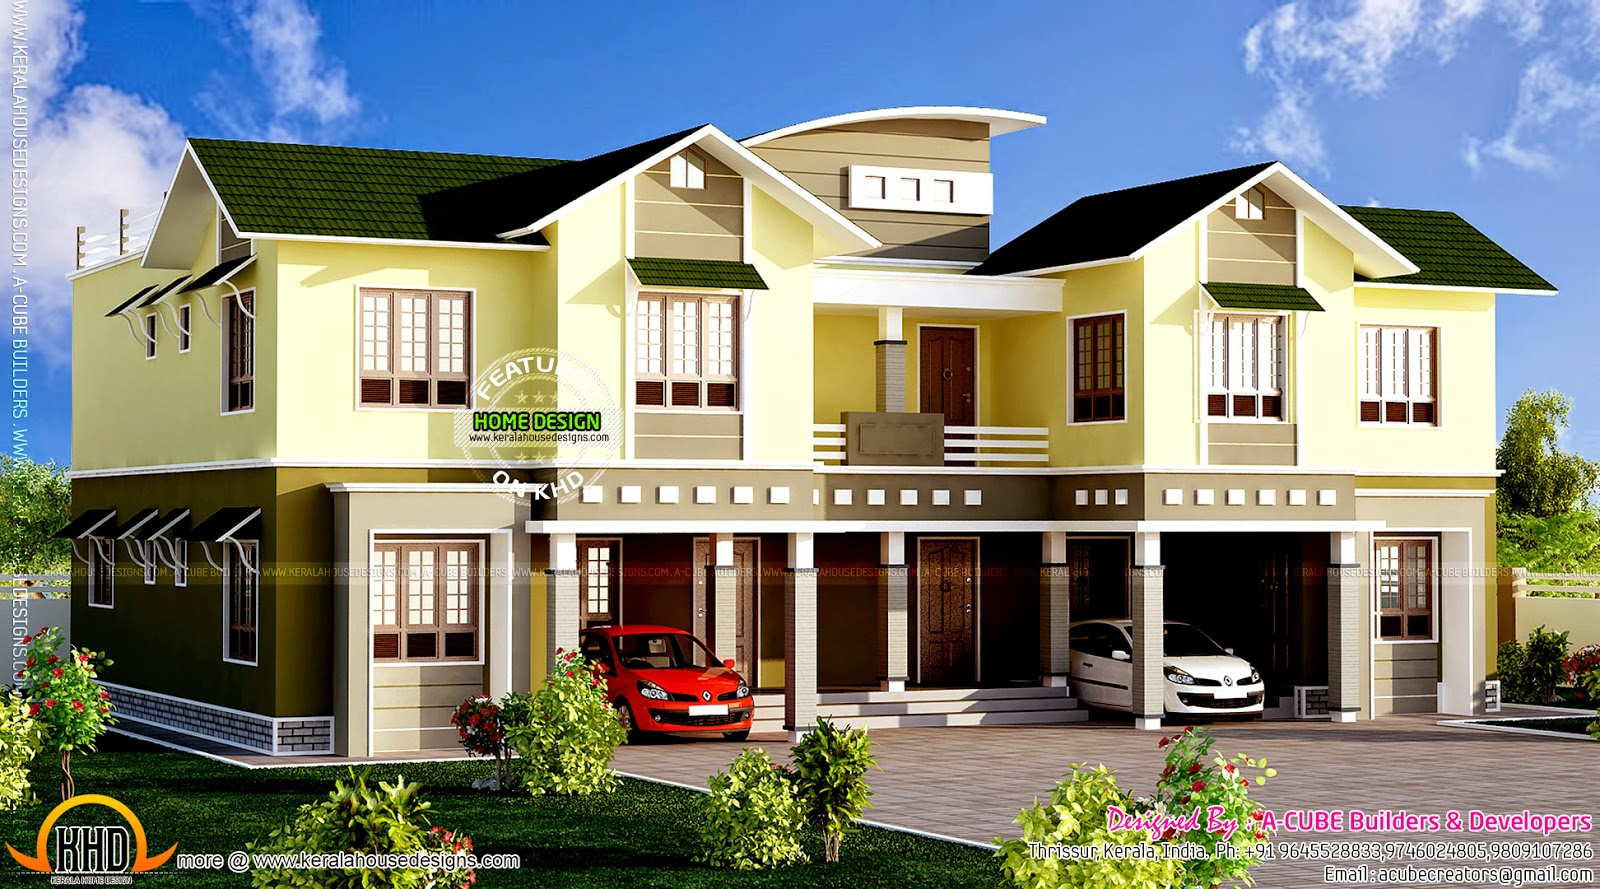 Kerala home design and floor plans luxury duplex home for Home design ideas